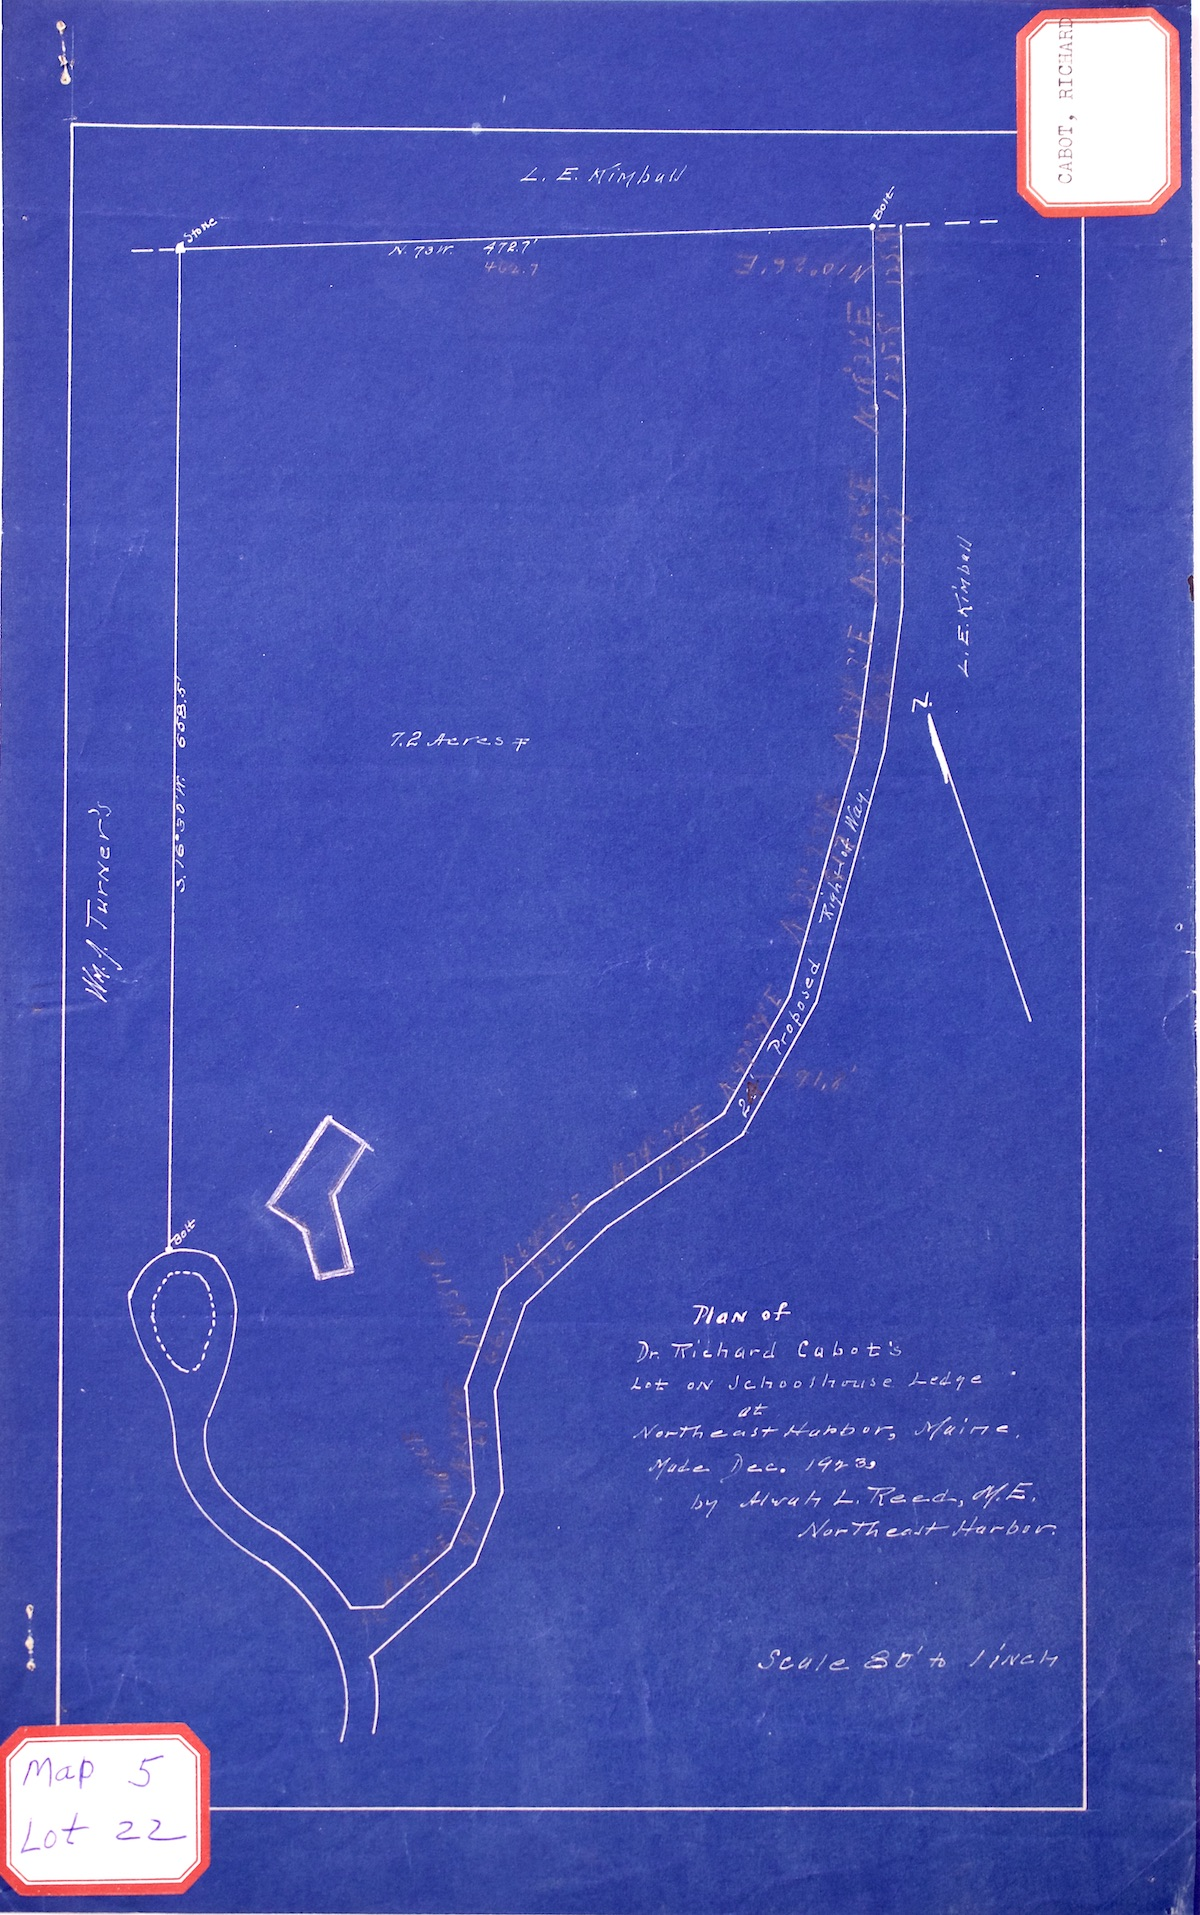 Plan of Dr. Richard Cabot's Lot on Schoolhouse Ledge